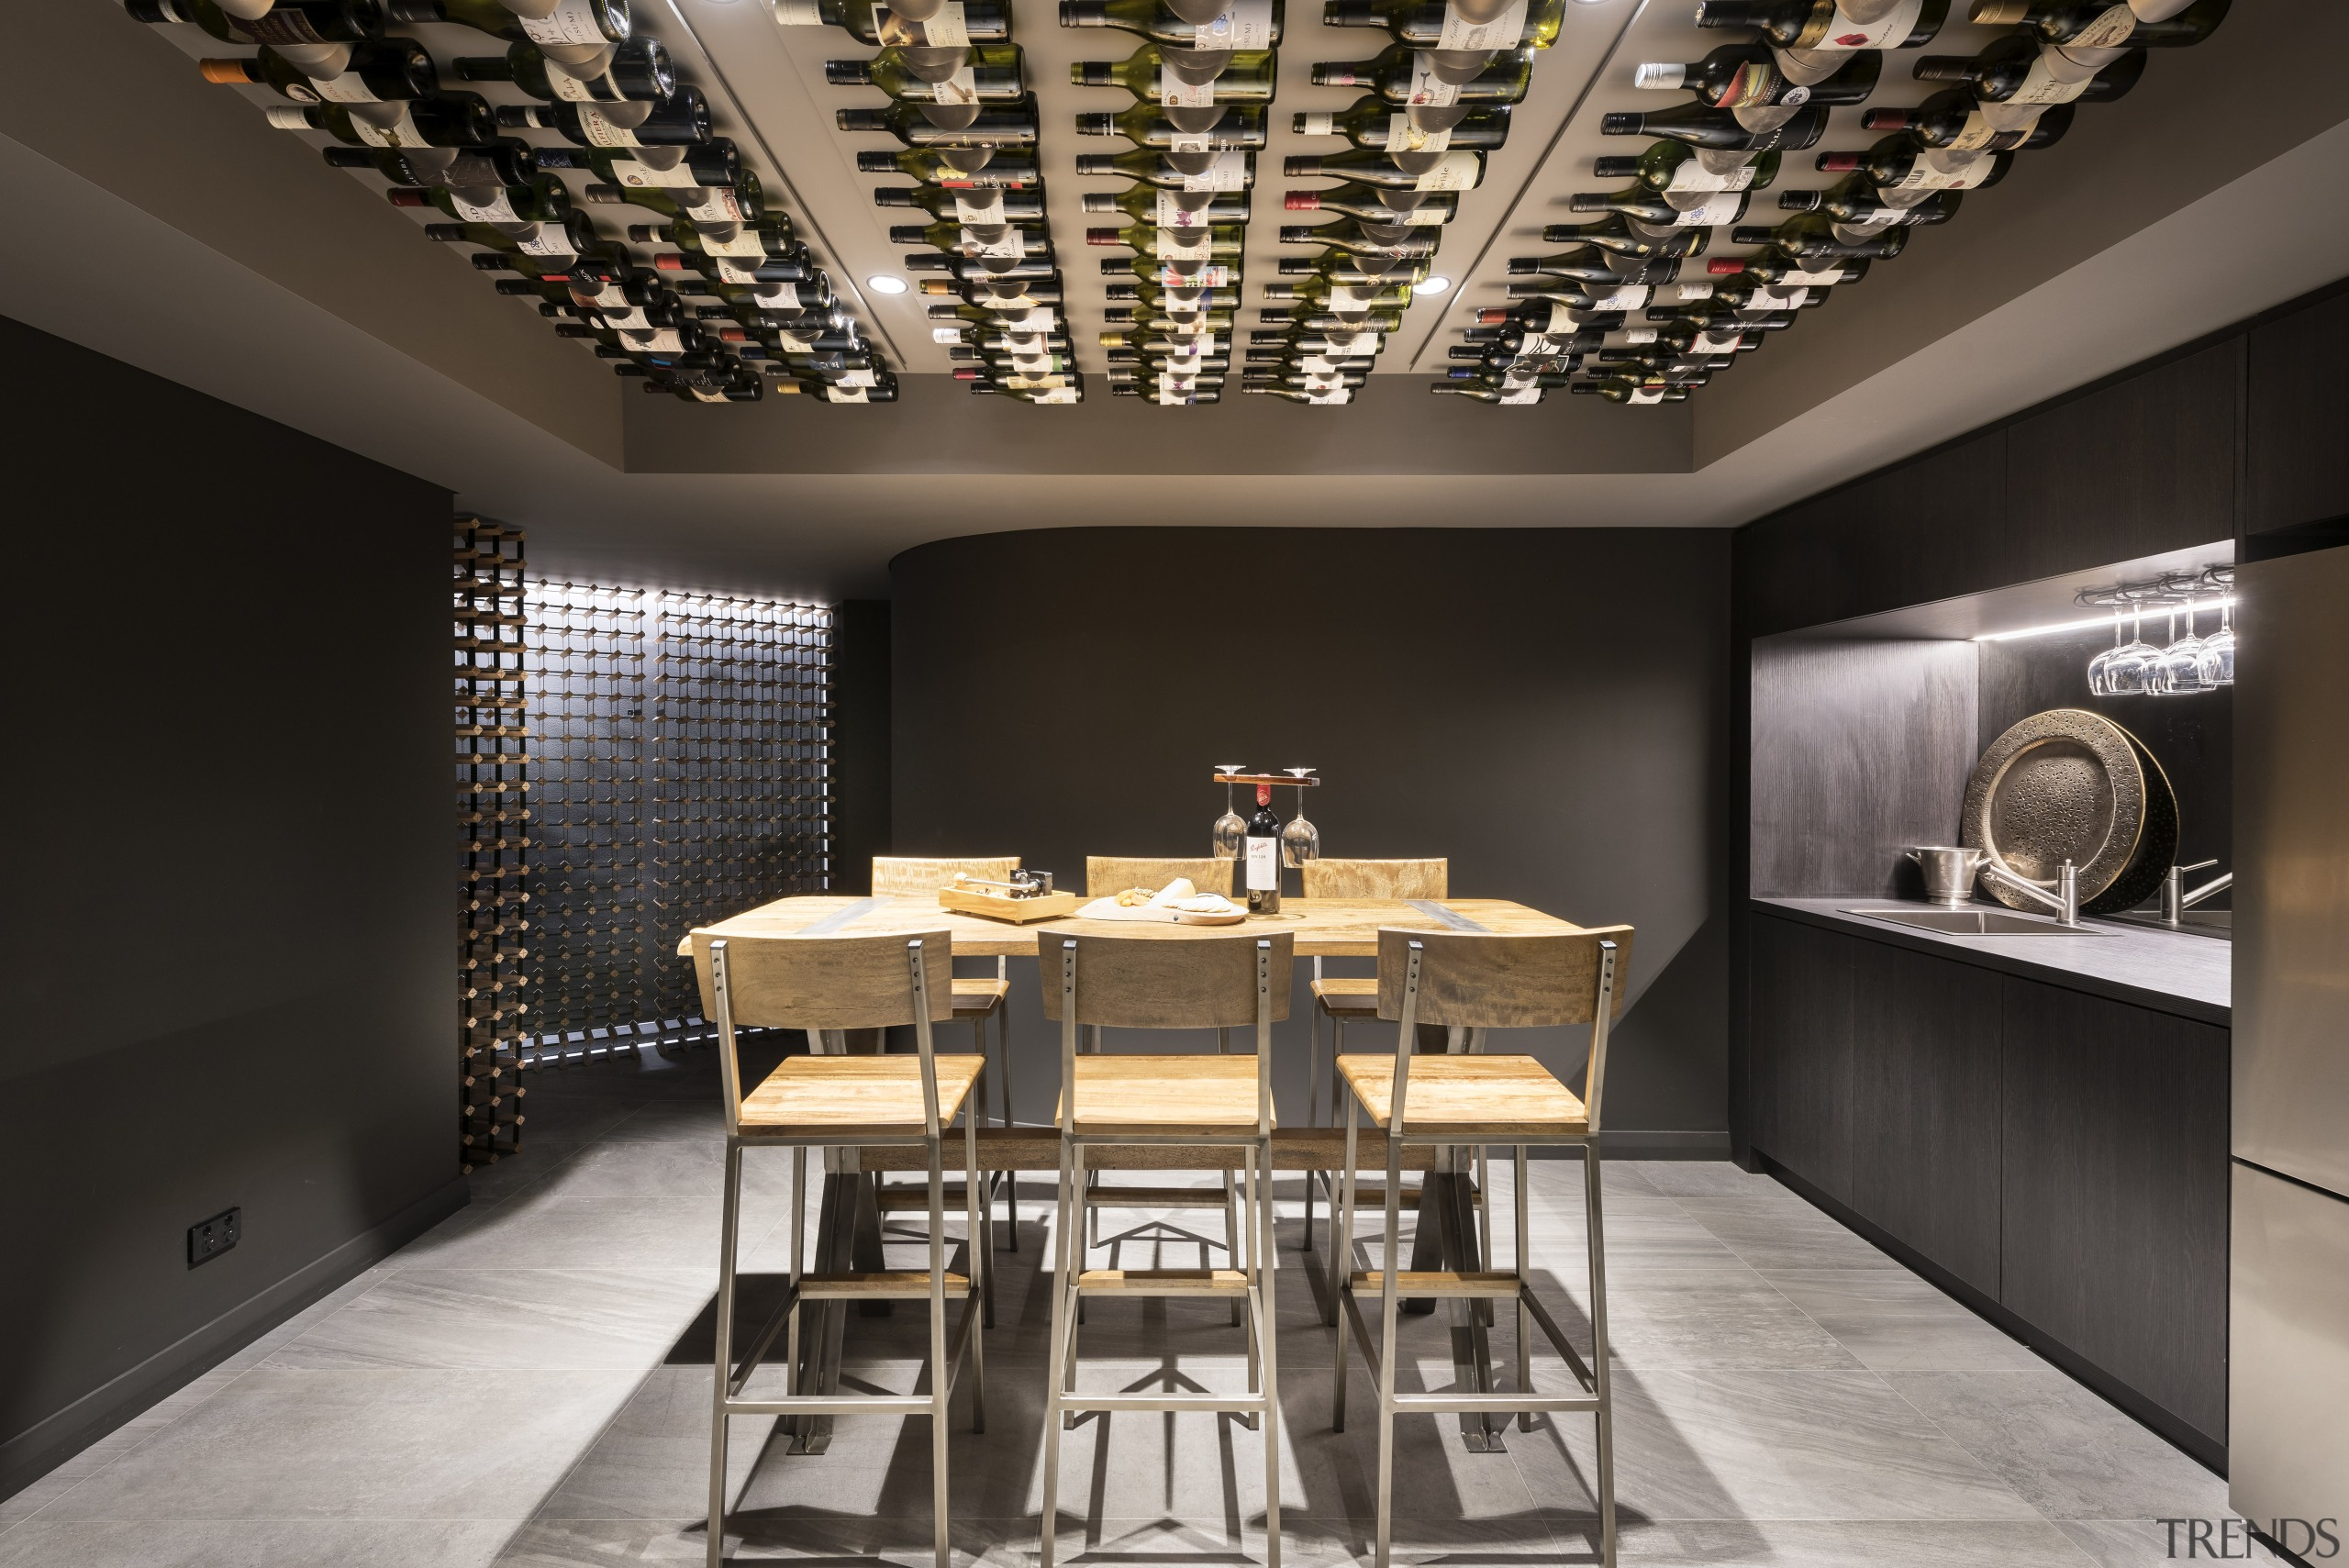 Wine cellar – contemporary new home by Urbane ceiling, dining room, interior design, table, black, gray